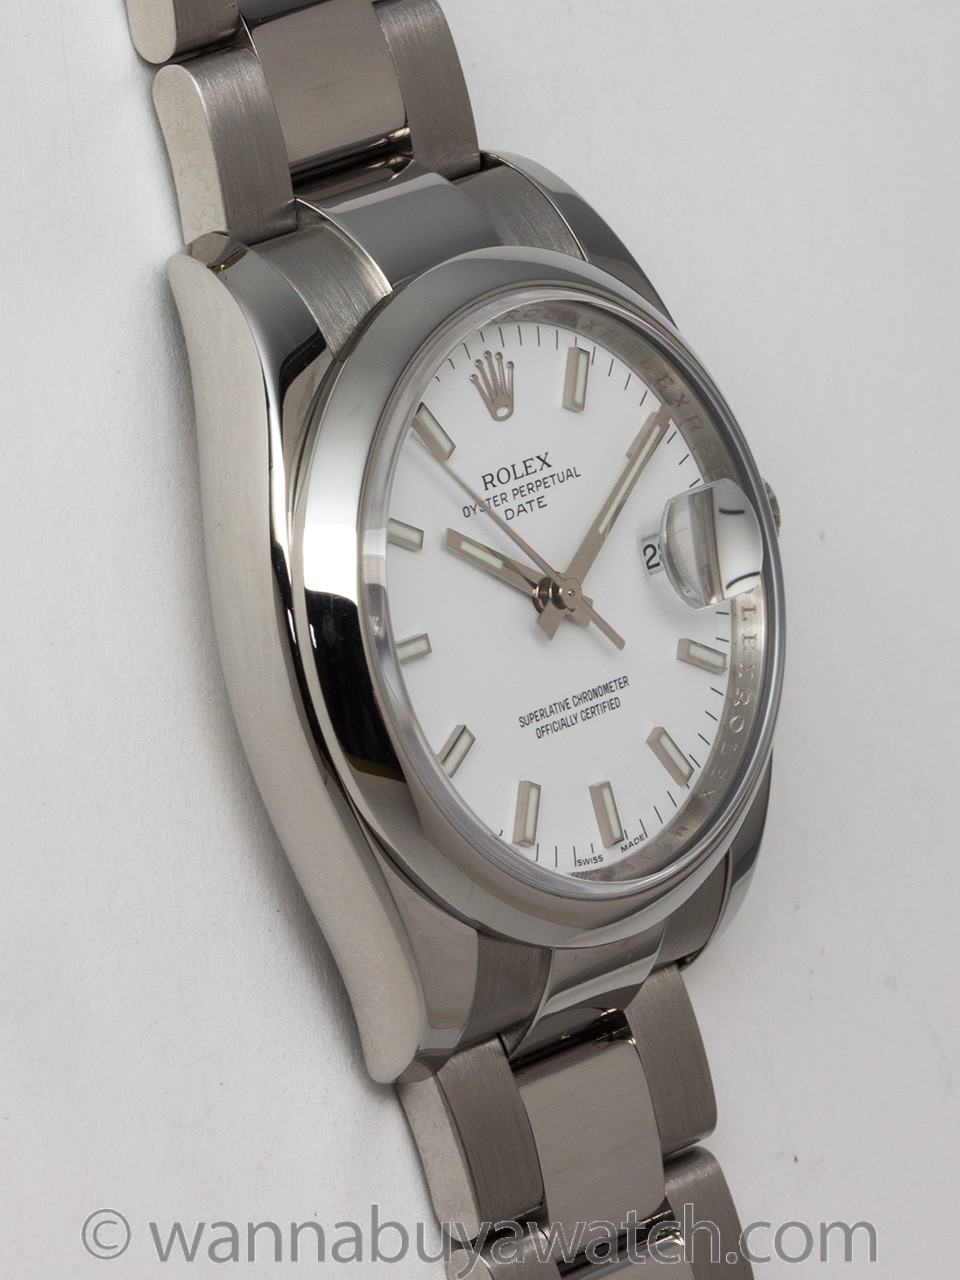 Wanna Buy A Watch Rolex Ss Oyster Perpetual Date Ref